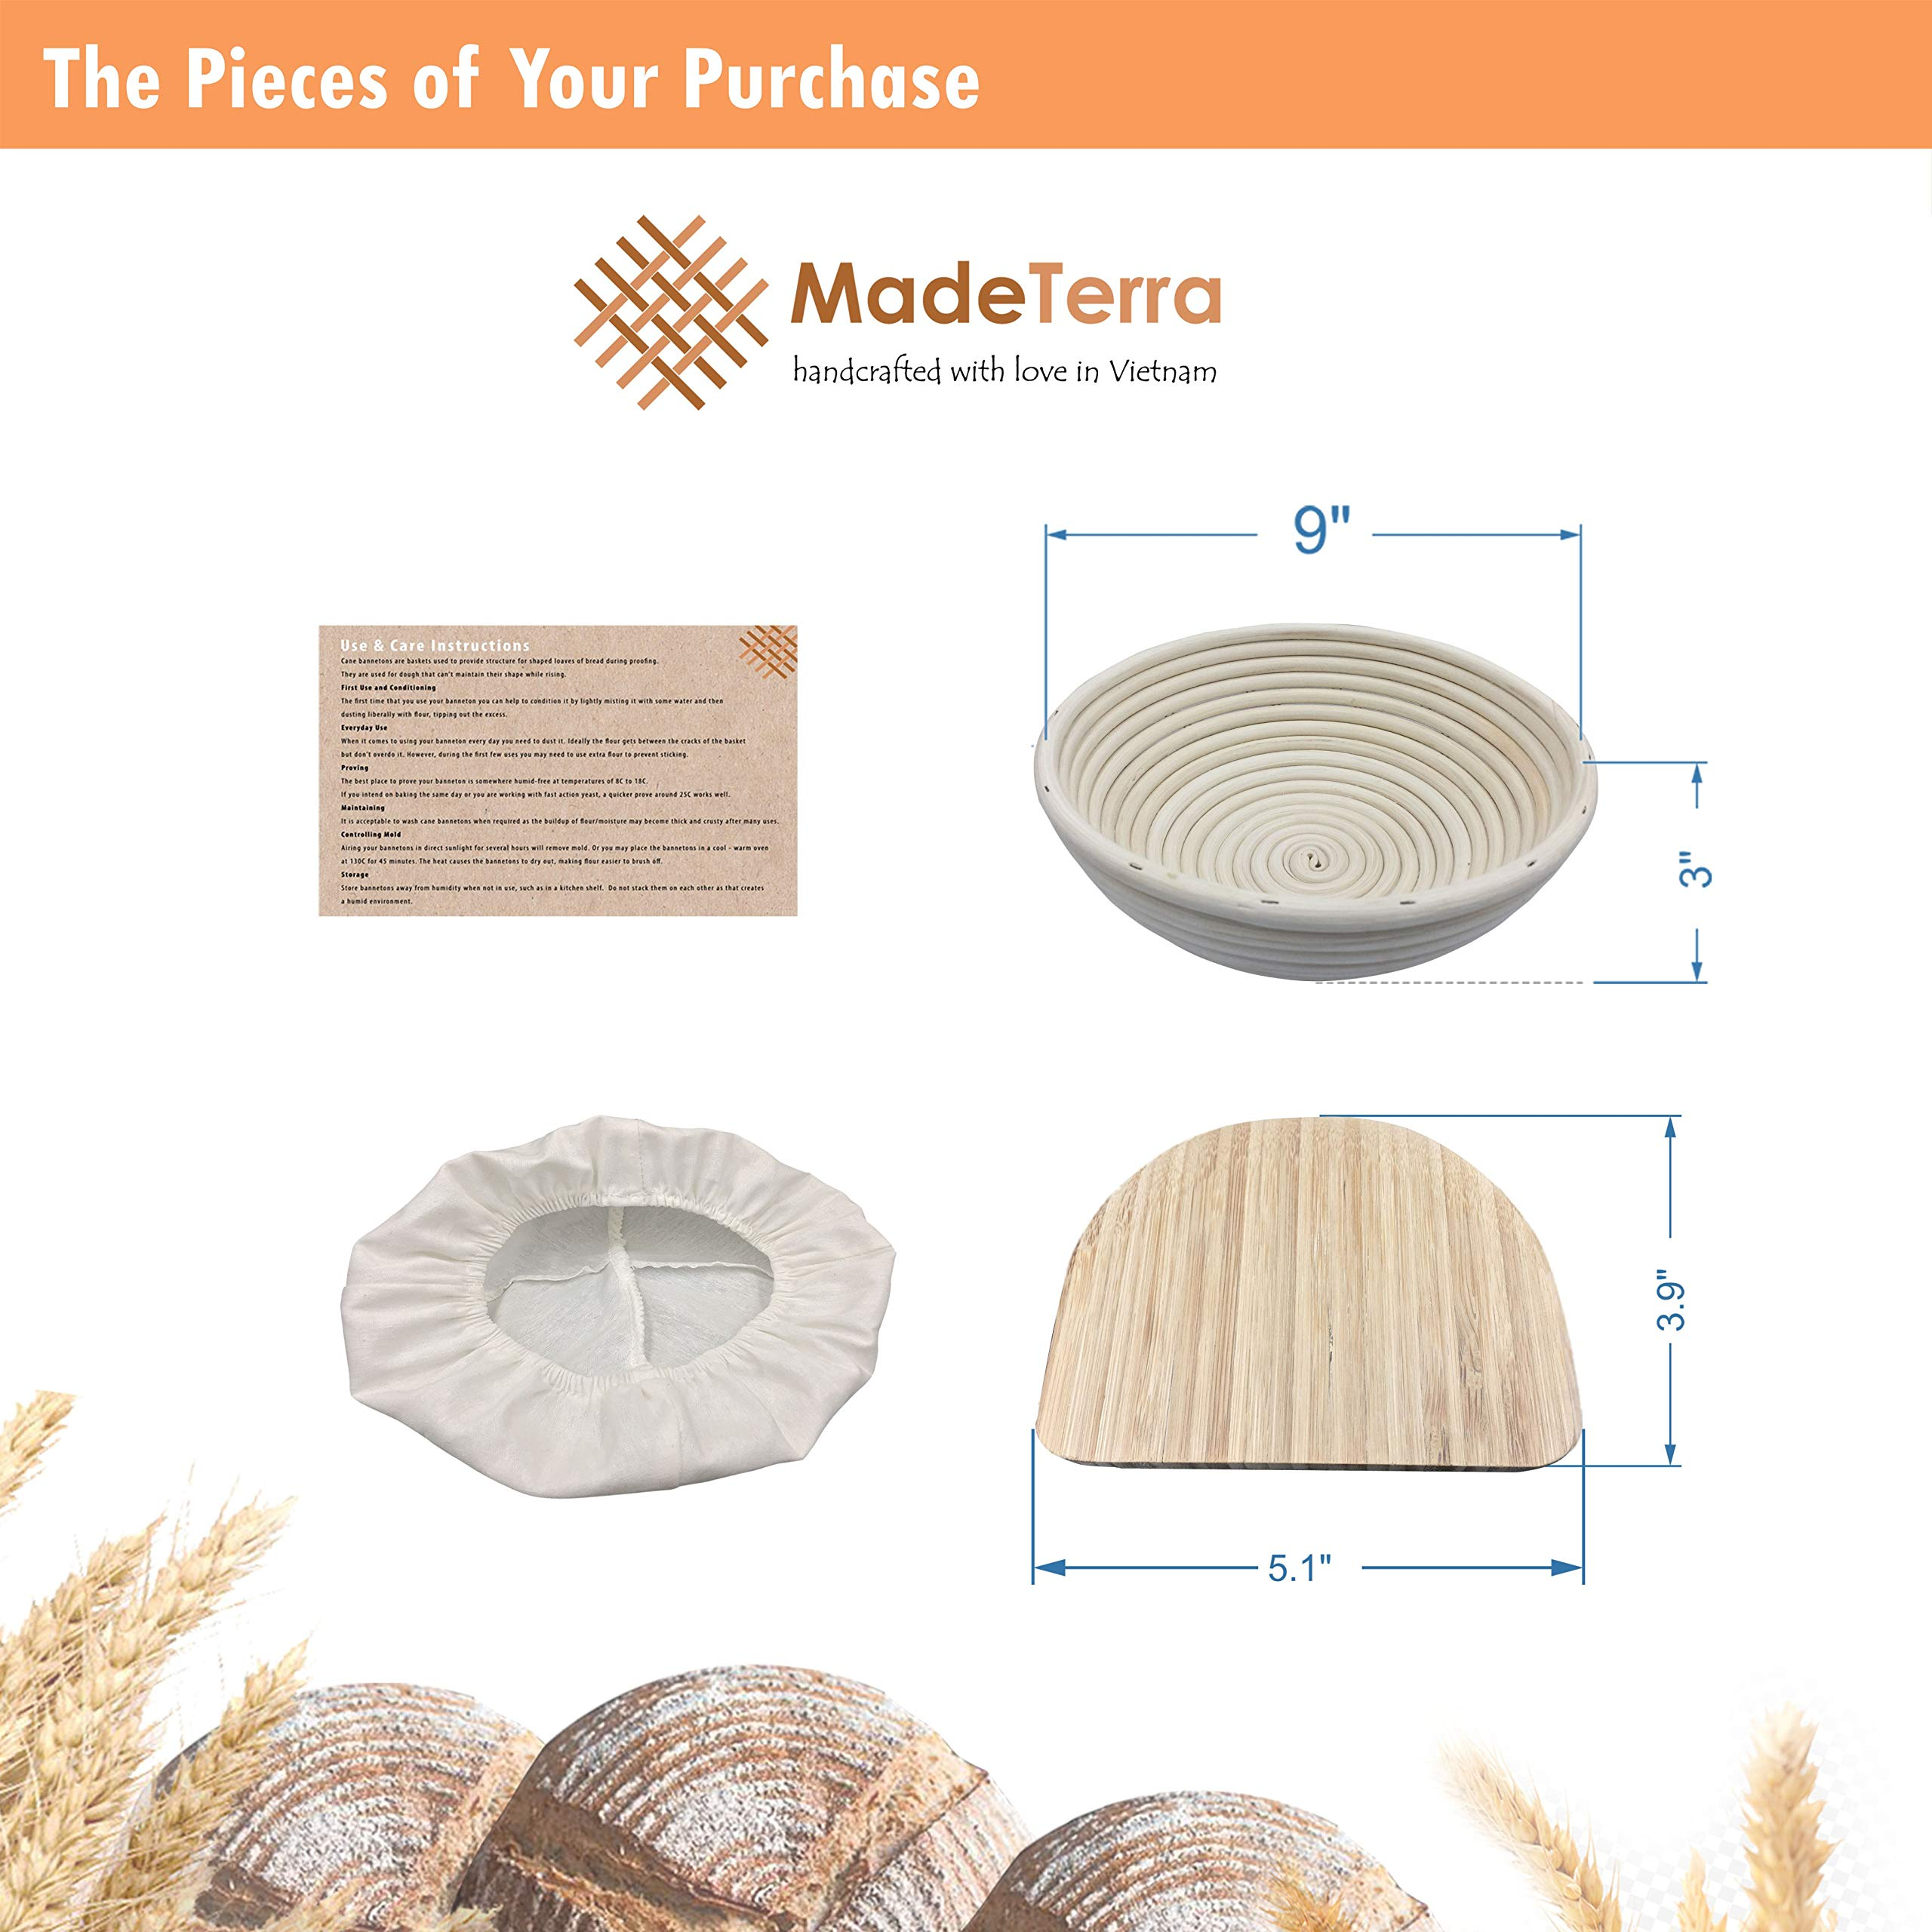 9 inch Banneton Proofing Baskets for Sourdough Bread | Wicker Round Brotform Set with Bamboo Dough Scraper & Cloth Liners | Food-Safe Cane Bread Proofer for Rising (3 Pack 9'' Round Bannetons) by Made Terra (Image #4)